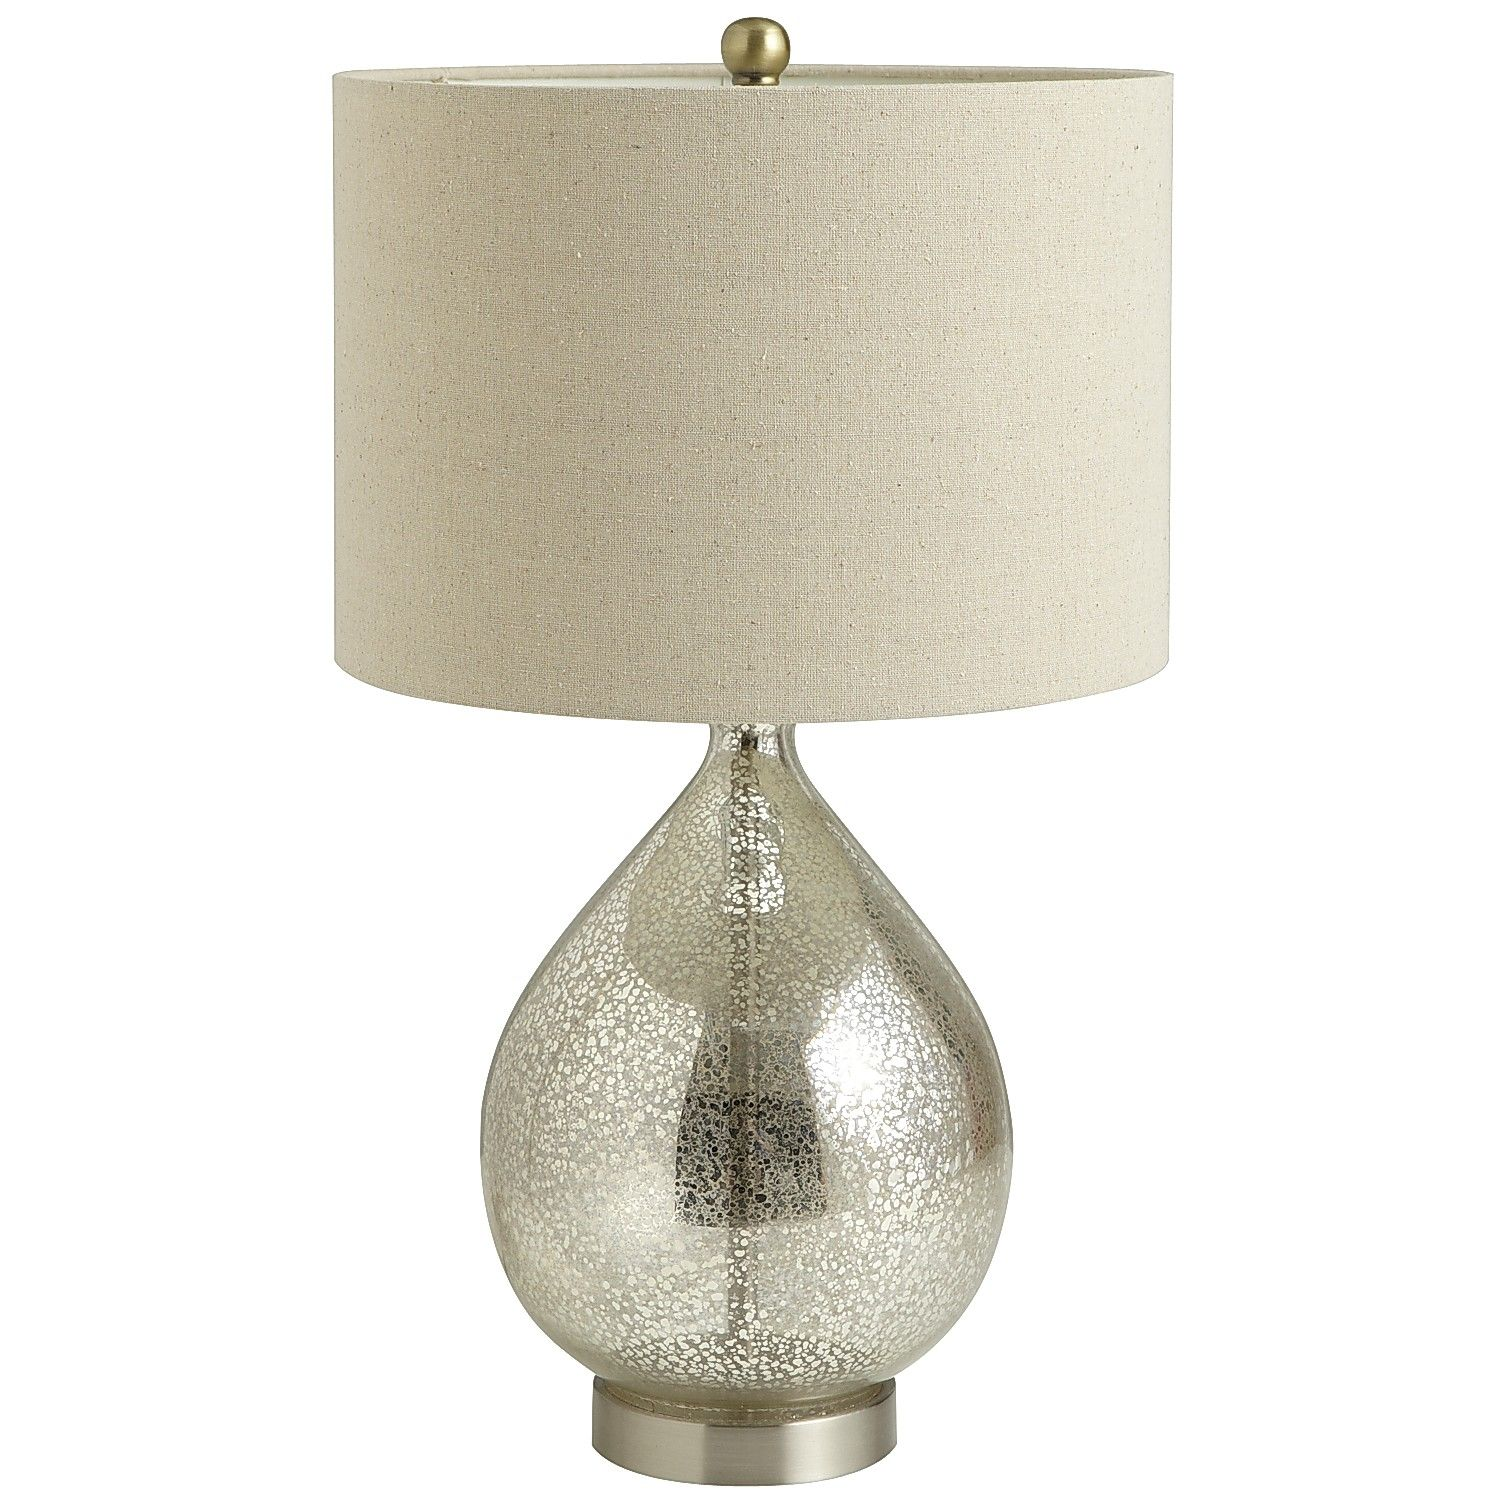 light Teardrop Mercury Glass Table Lamp pier one